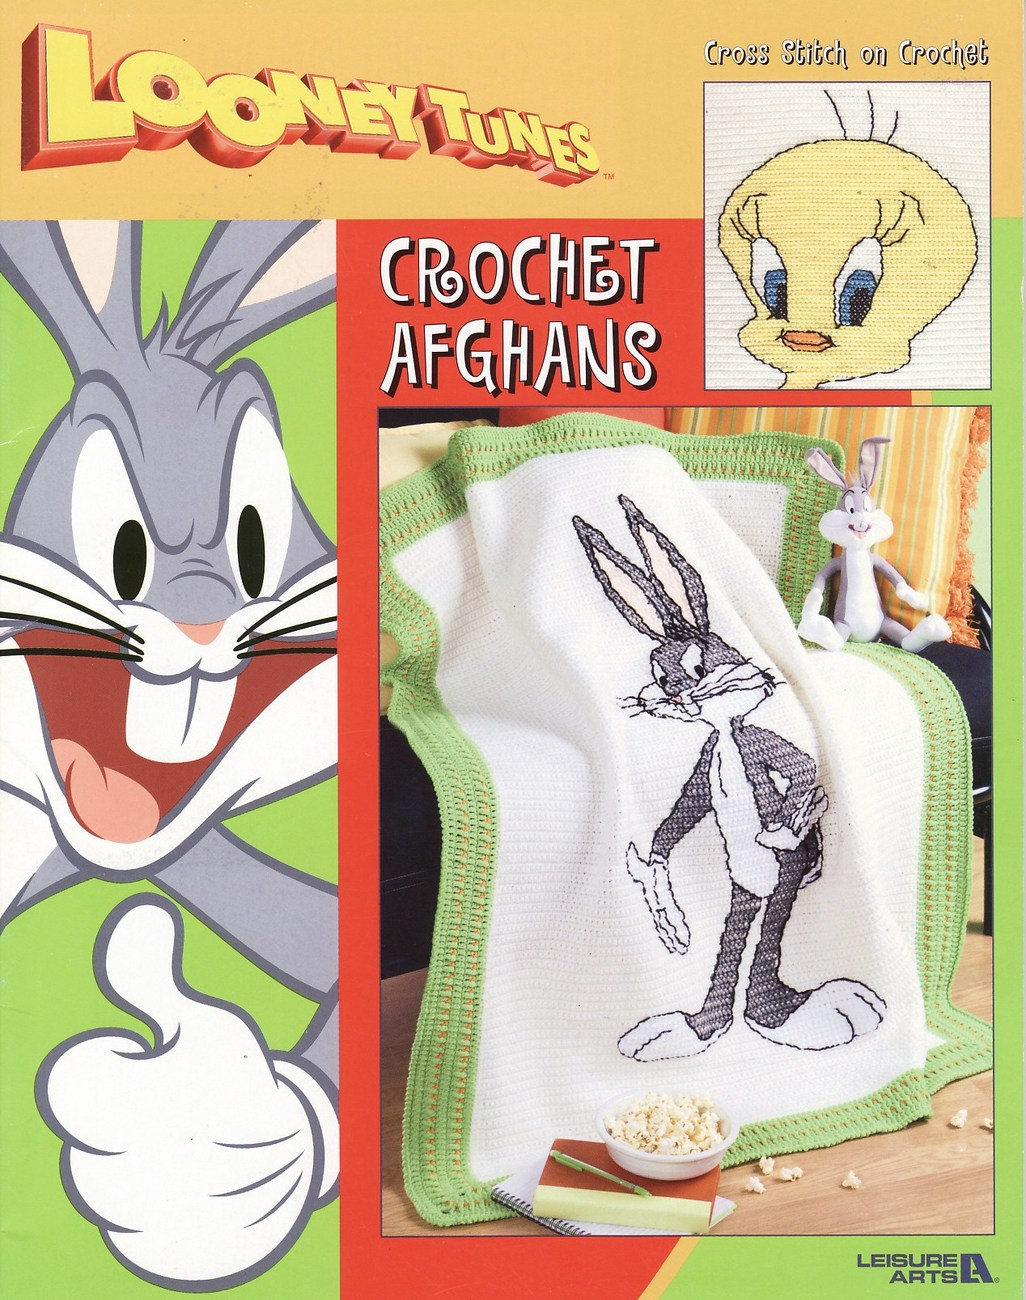 Looney Tunes Afghan Crochet Patterns Book Bugs Bunny Tweety Bird Taz Sylvester